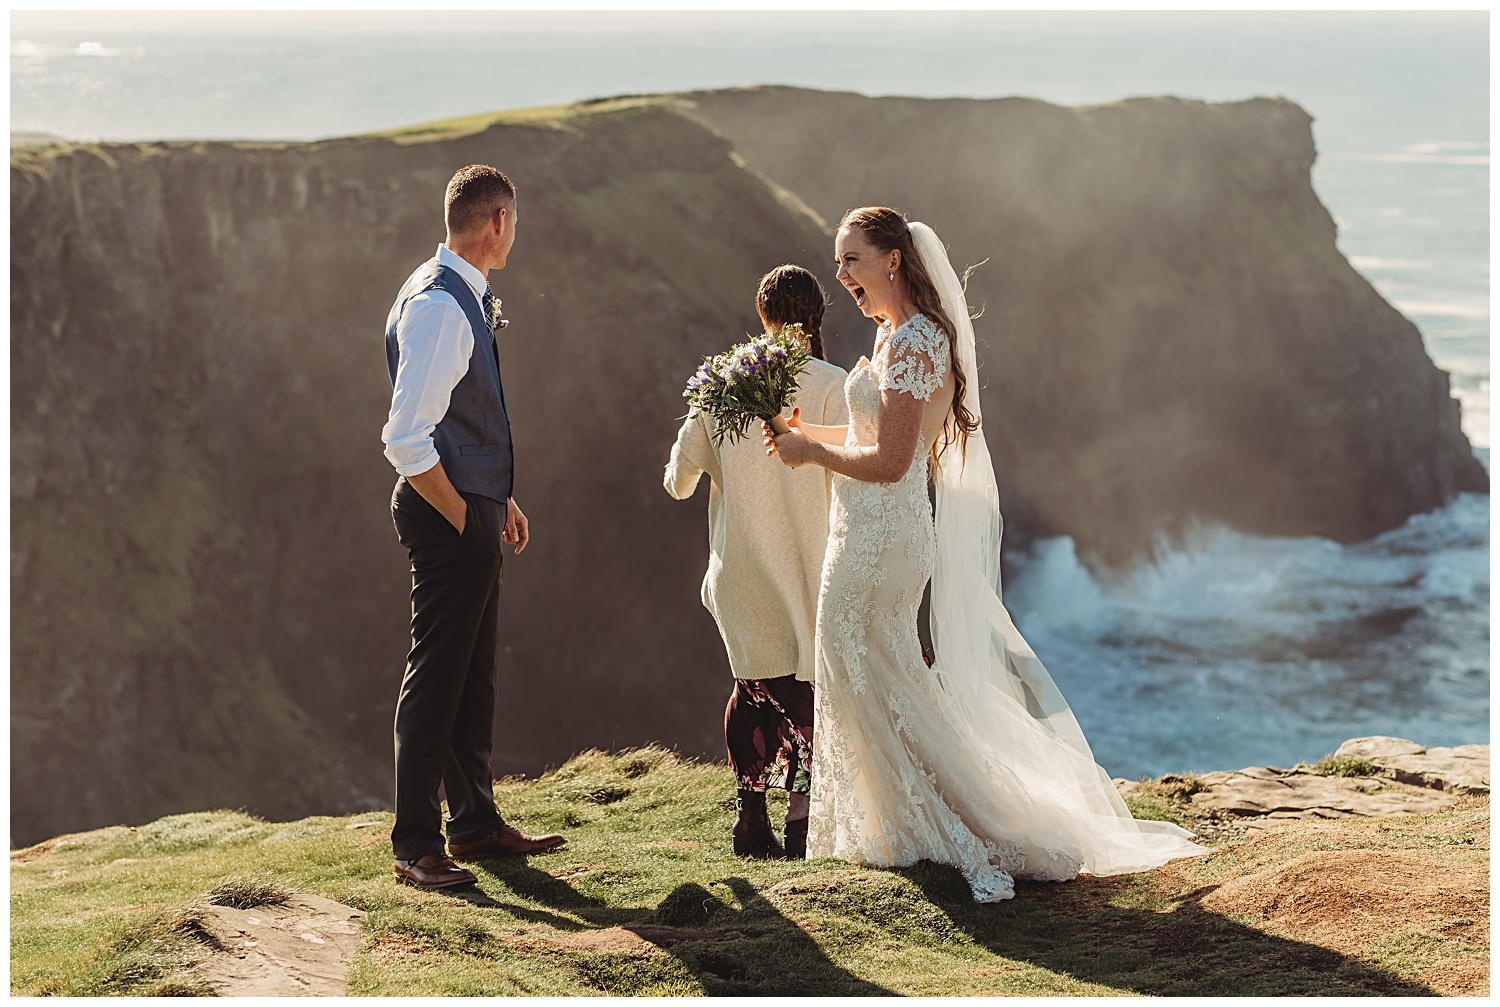 The Cliffs of Moher Destination Wedding Liscannor, County Clare, Ireland_1227.jpg